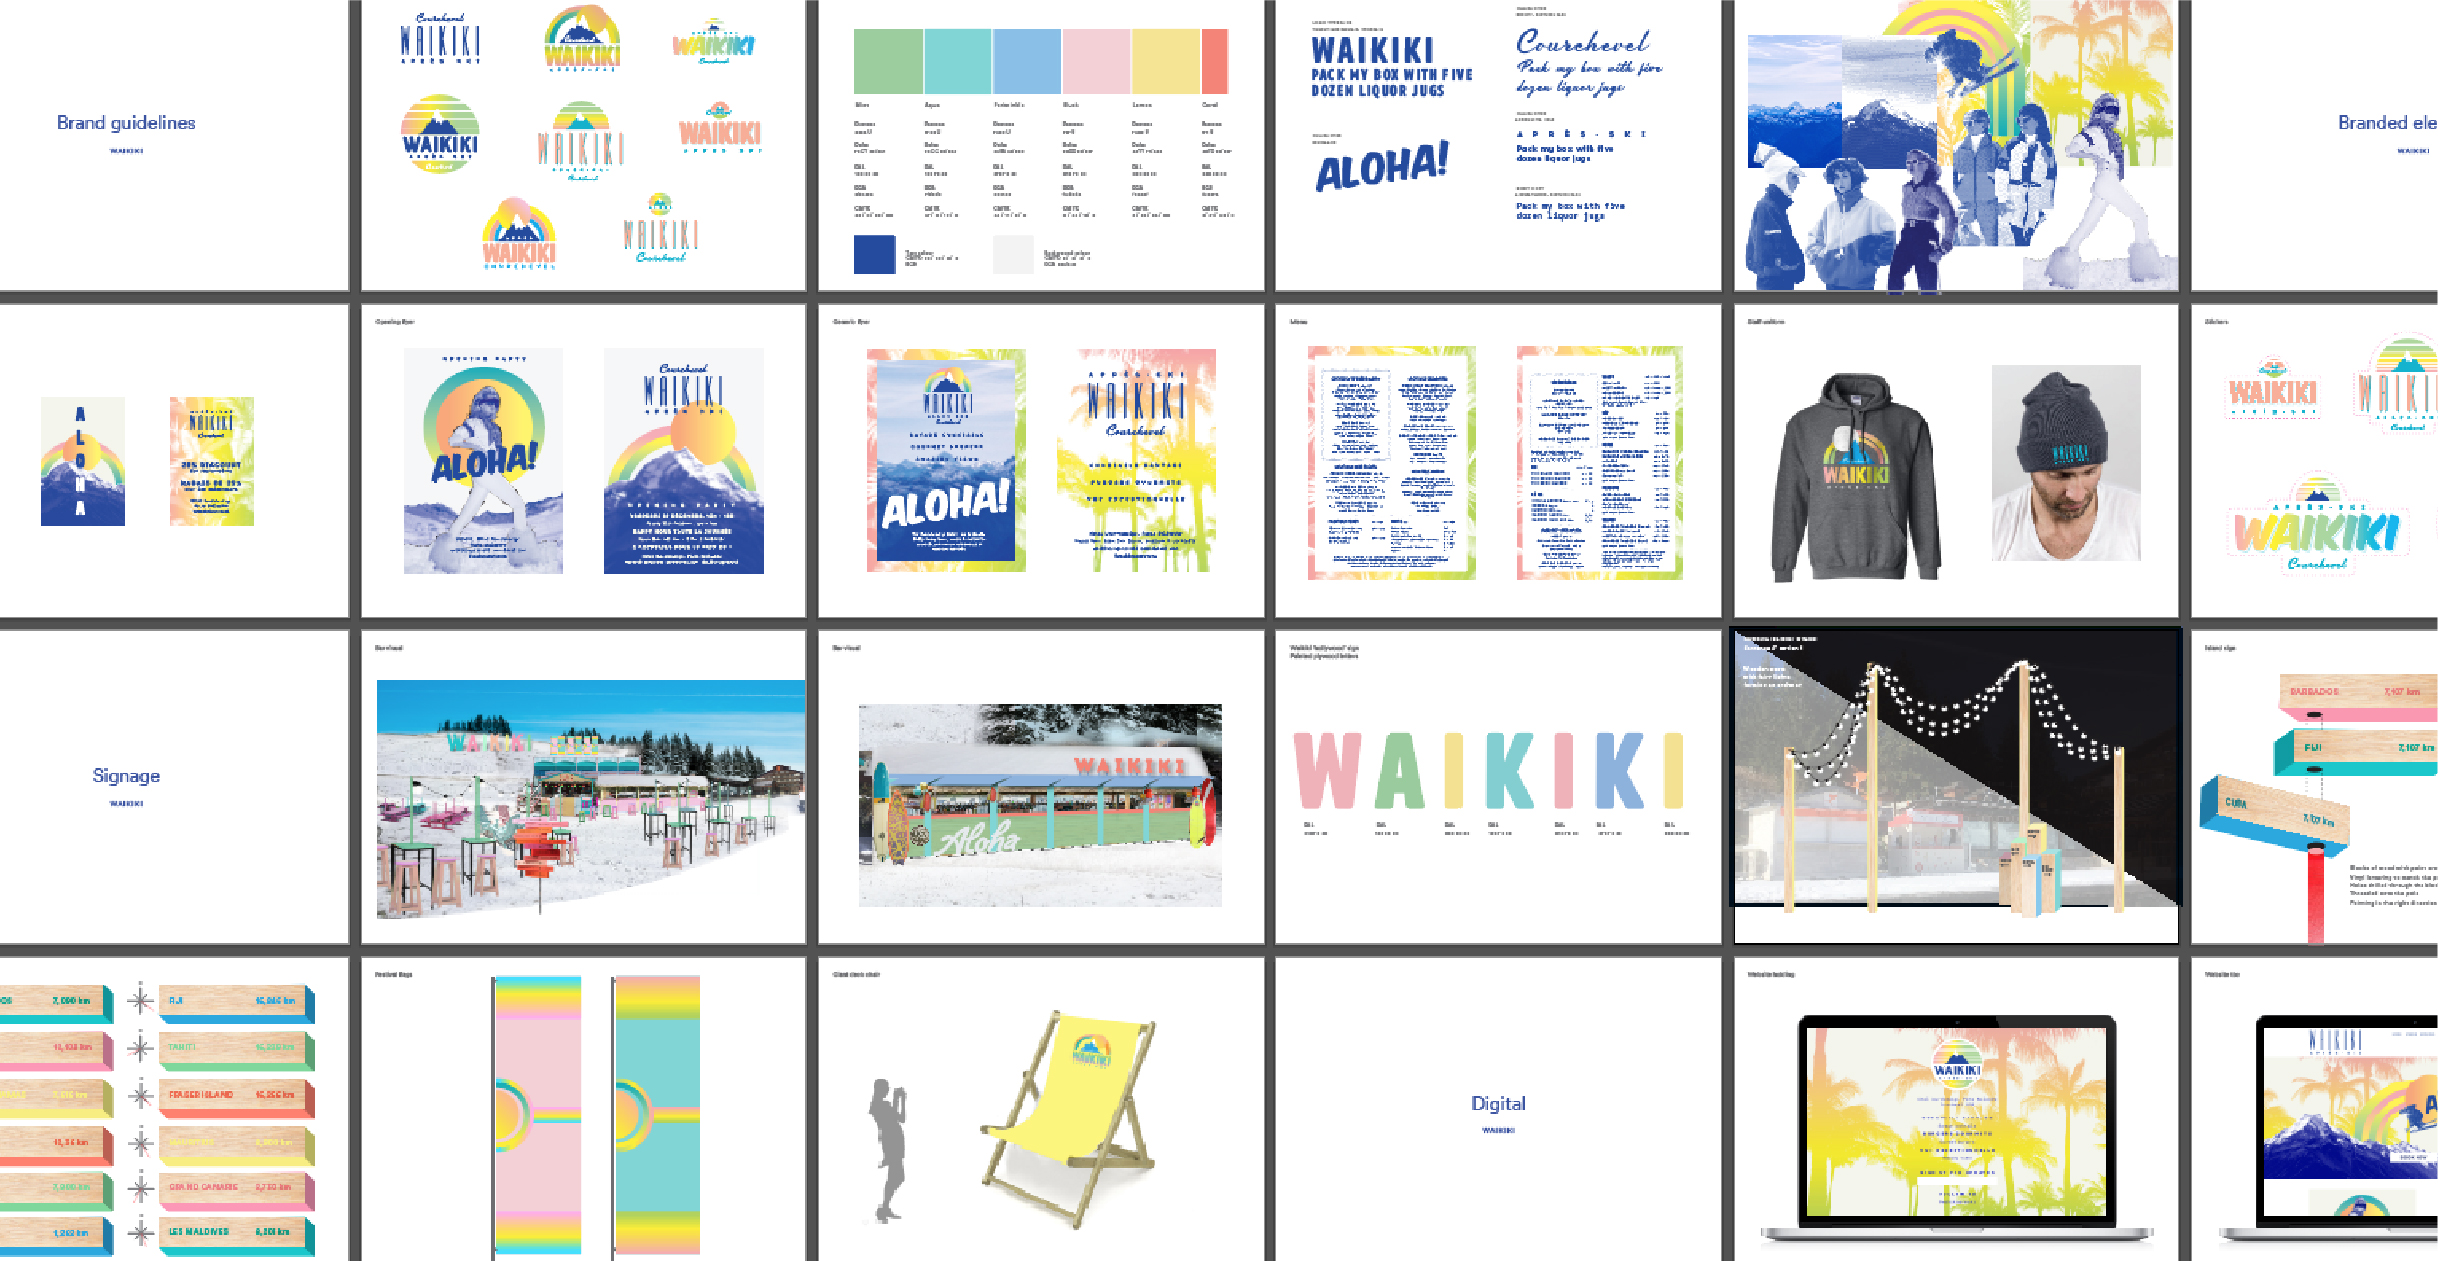 Brand guidelines for design of Waikiki Courchevel 1850